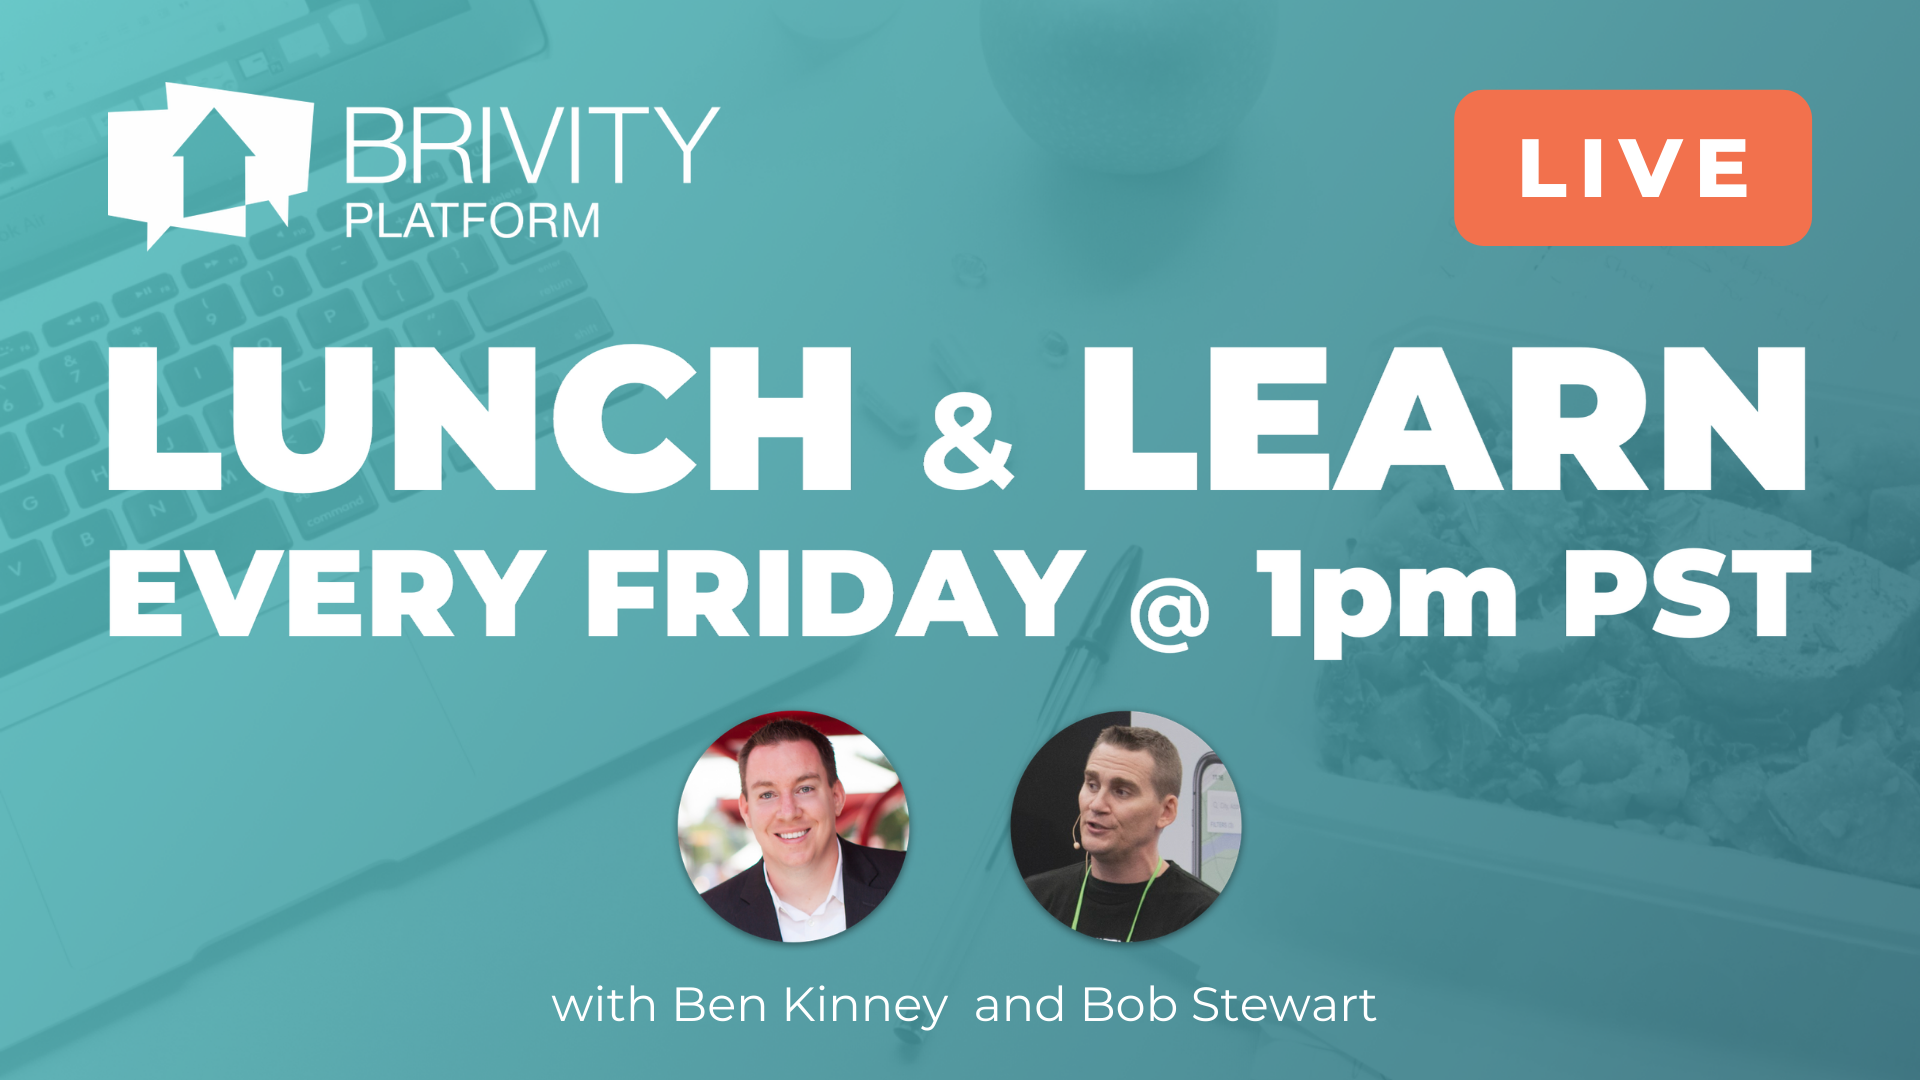 Copy of Brivity - Lunch & Learn every Friday